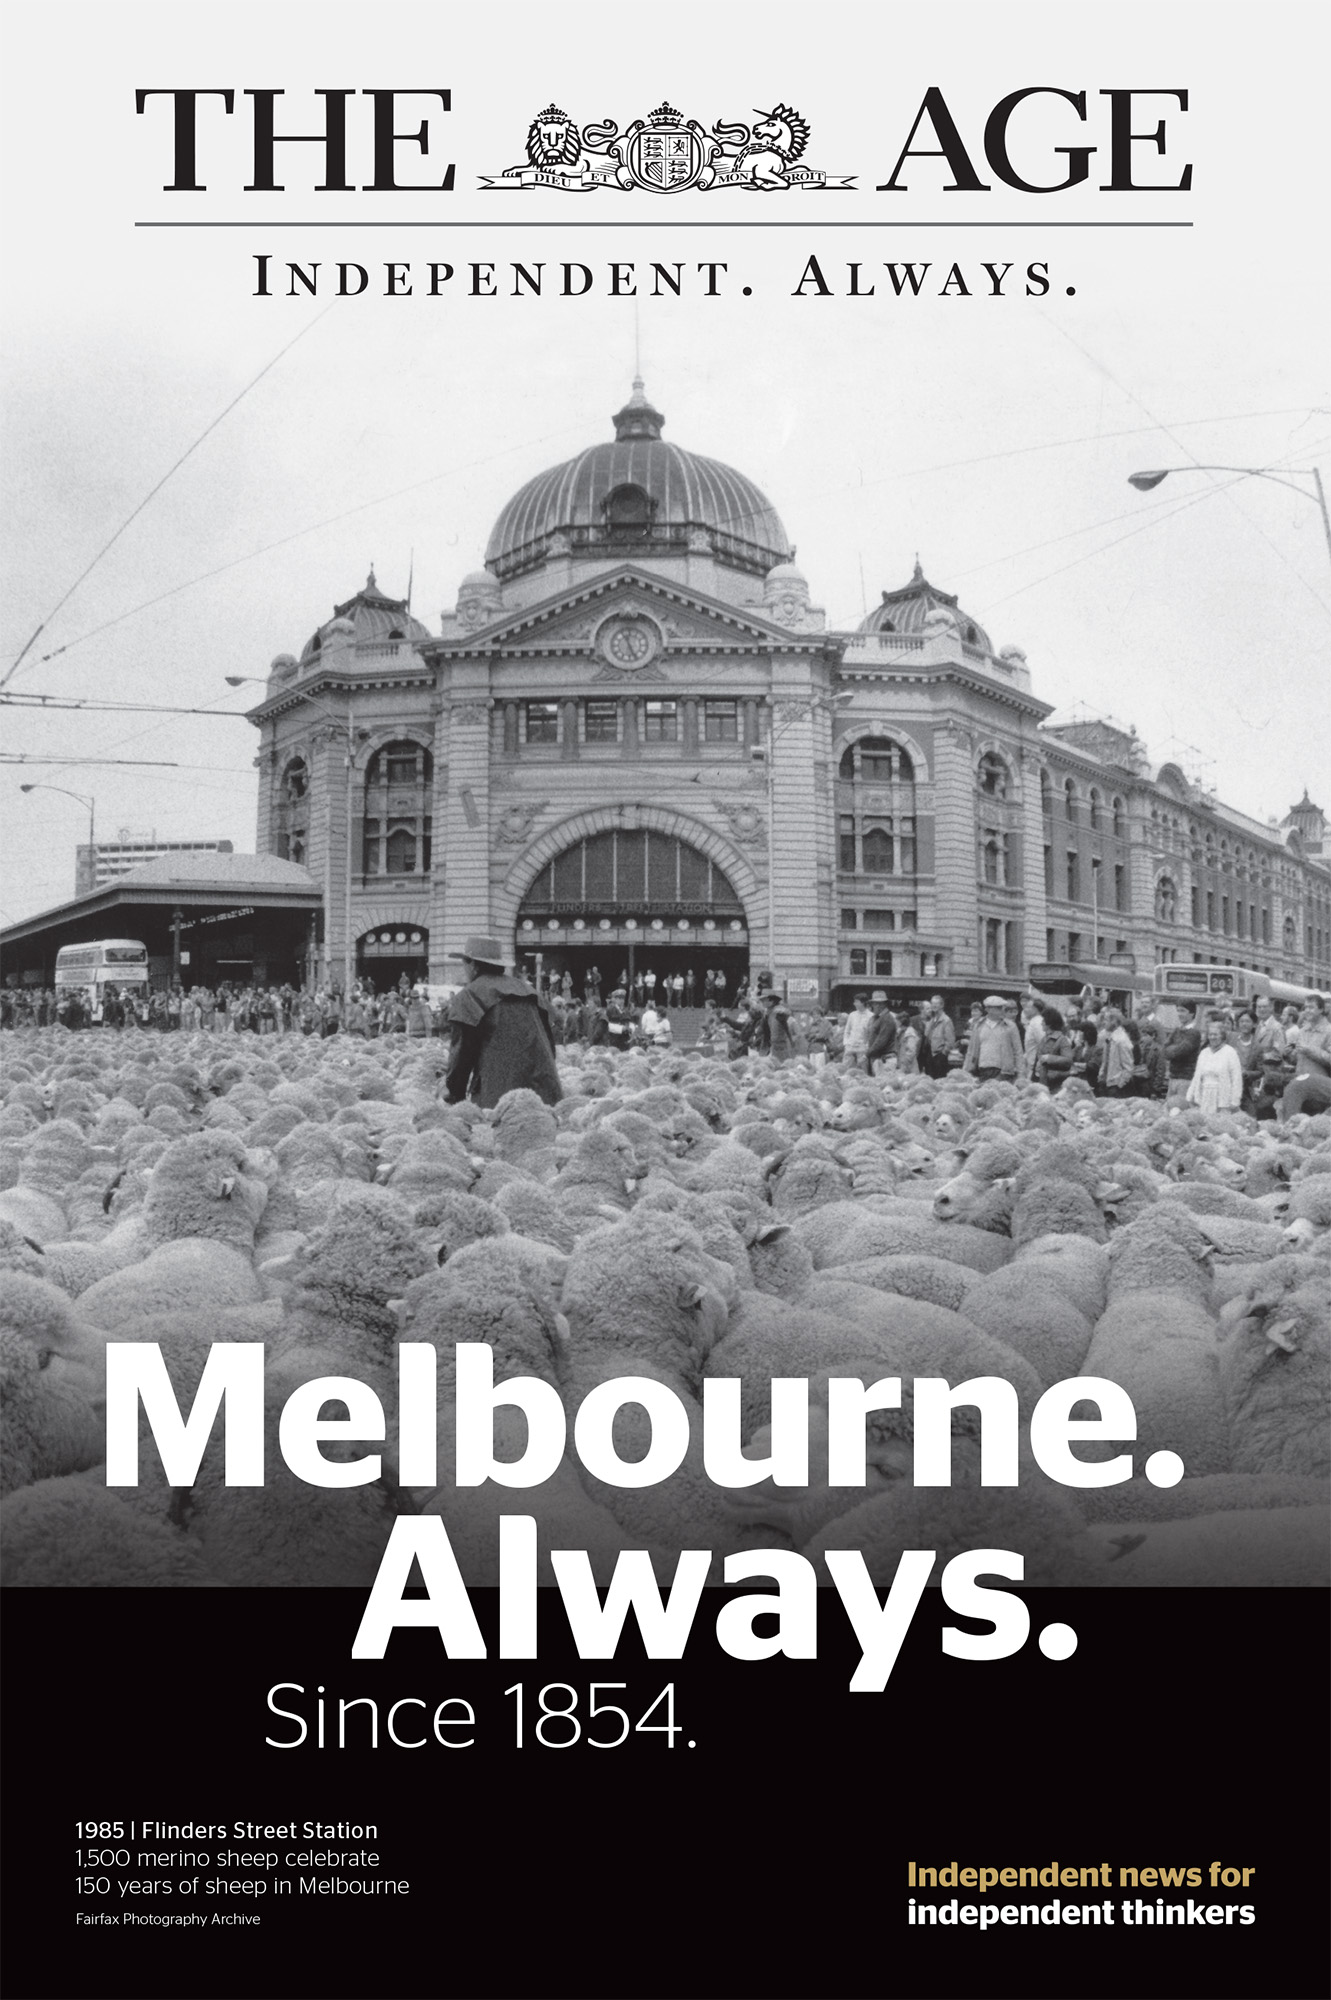 Fairfax_Always_Melbourne_Flinders Sheep